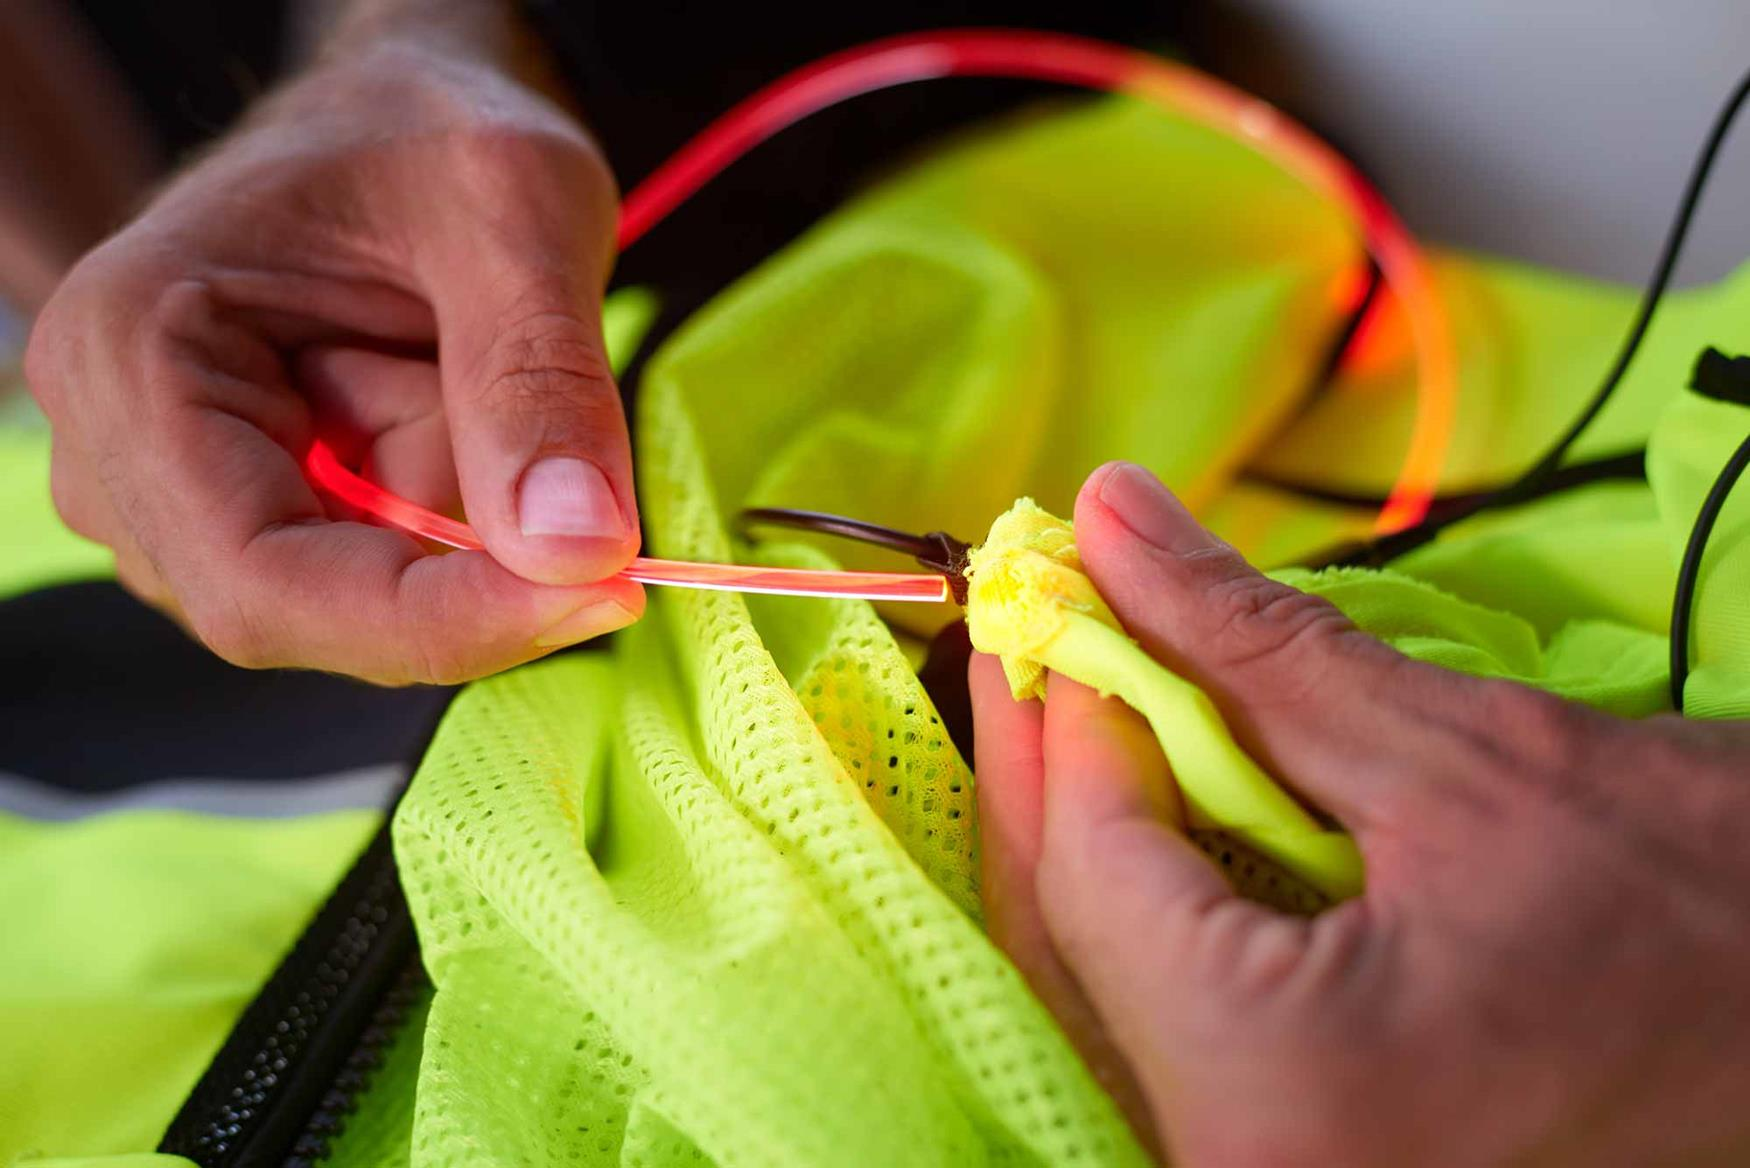 Feed the LED tubes through pockets in the garment